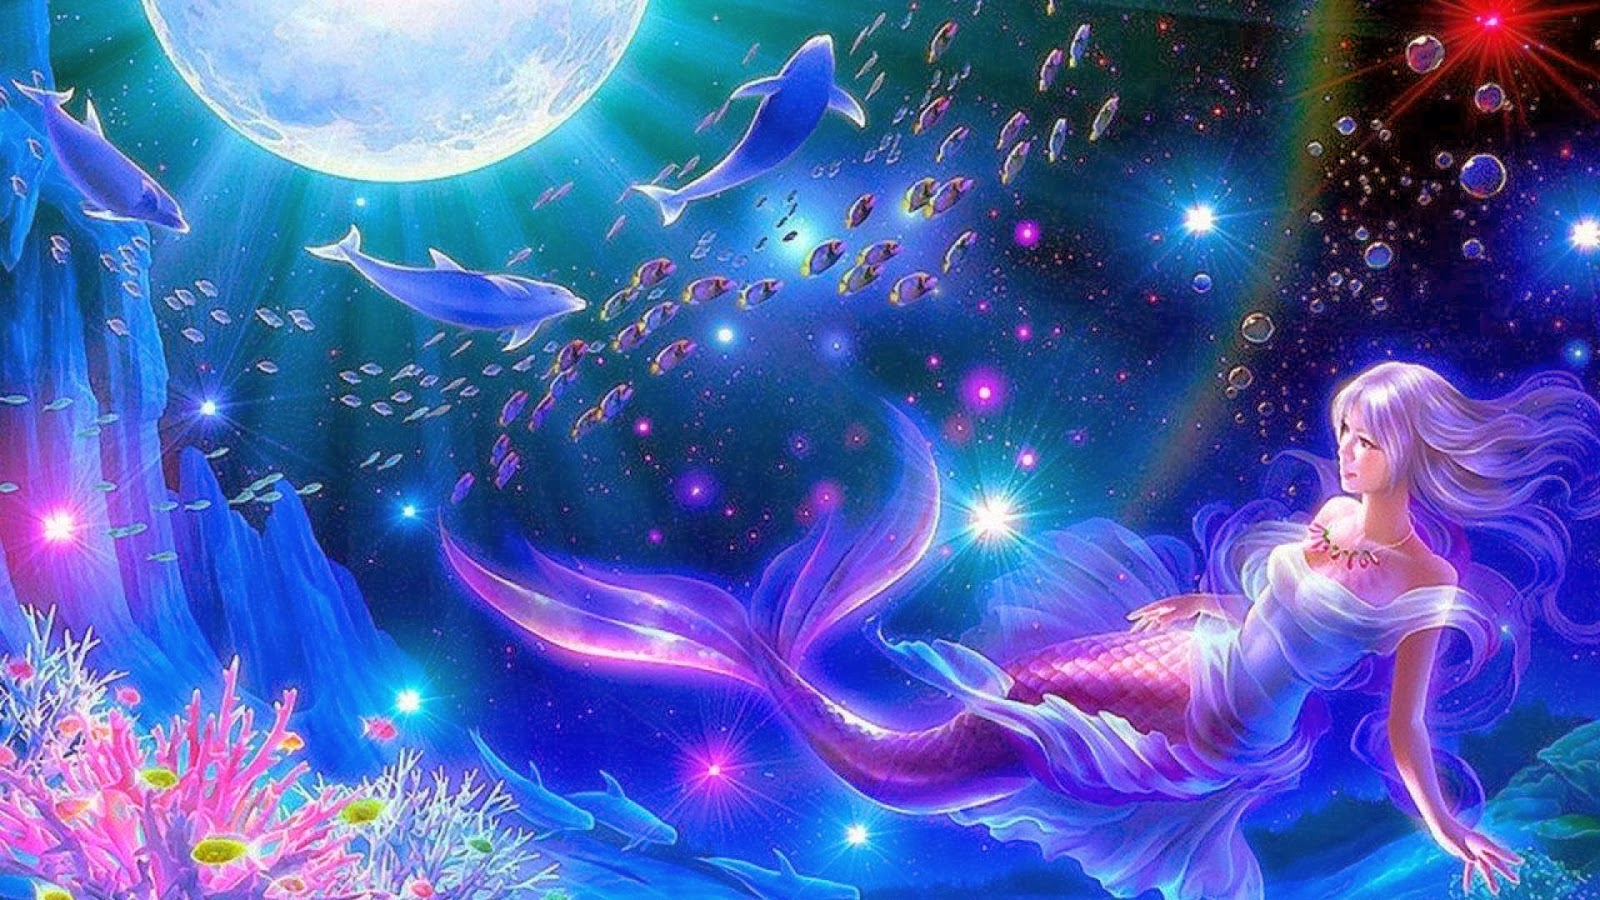 Mermaid Wallpapers for Desktop - WallpaperSafari